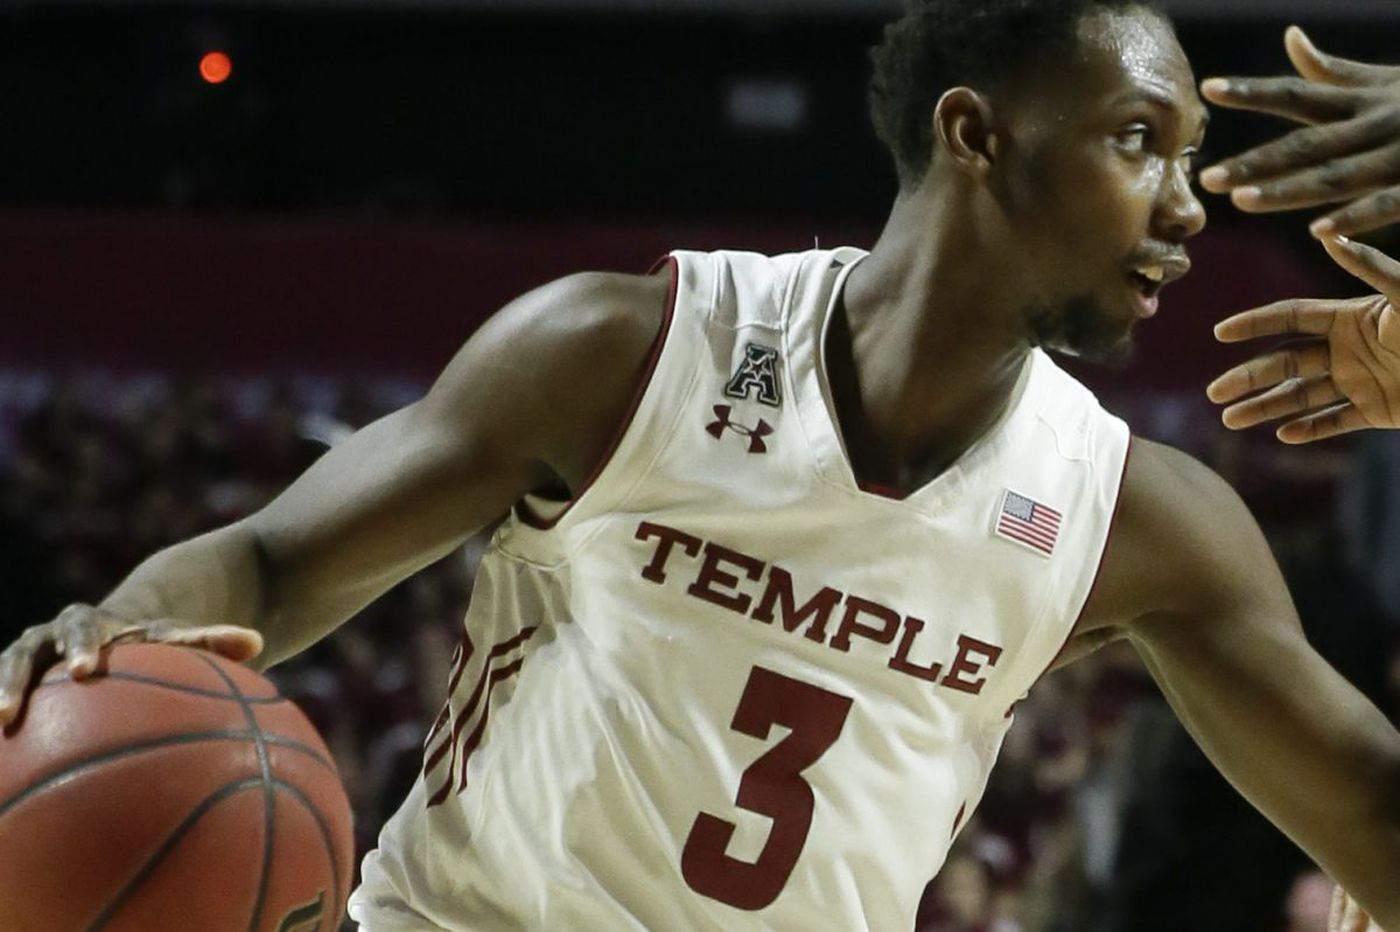 Temple beaten to the ball and a crucial game | Mike Jensen